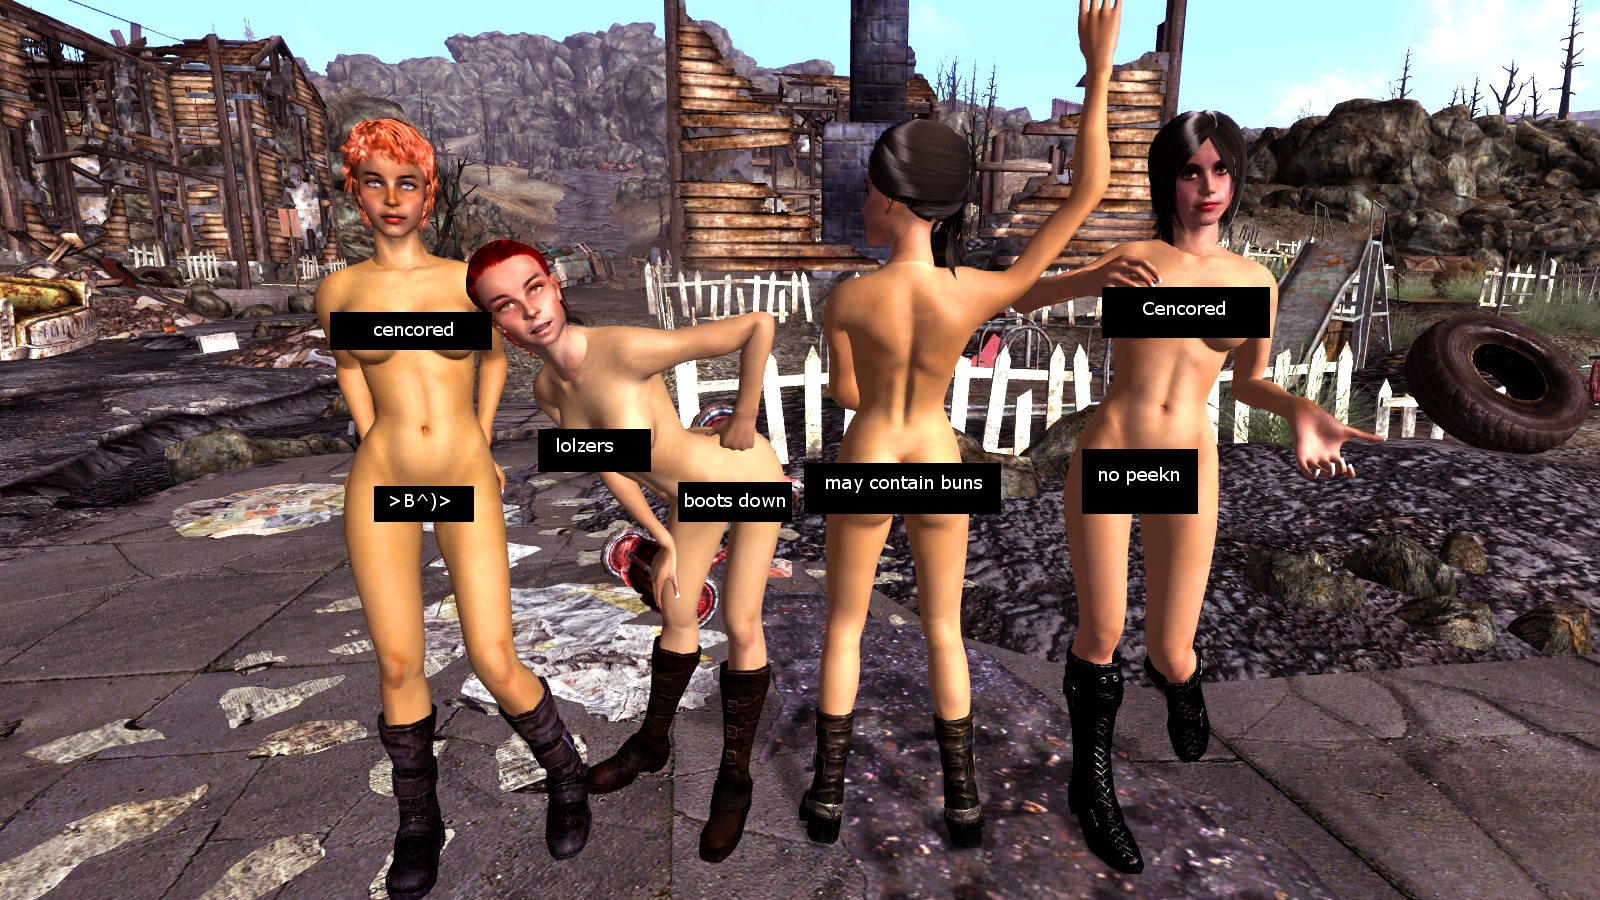 Vampire the masquerade nude patch cartoon photo